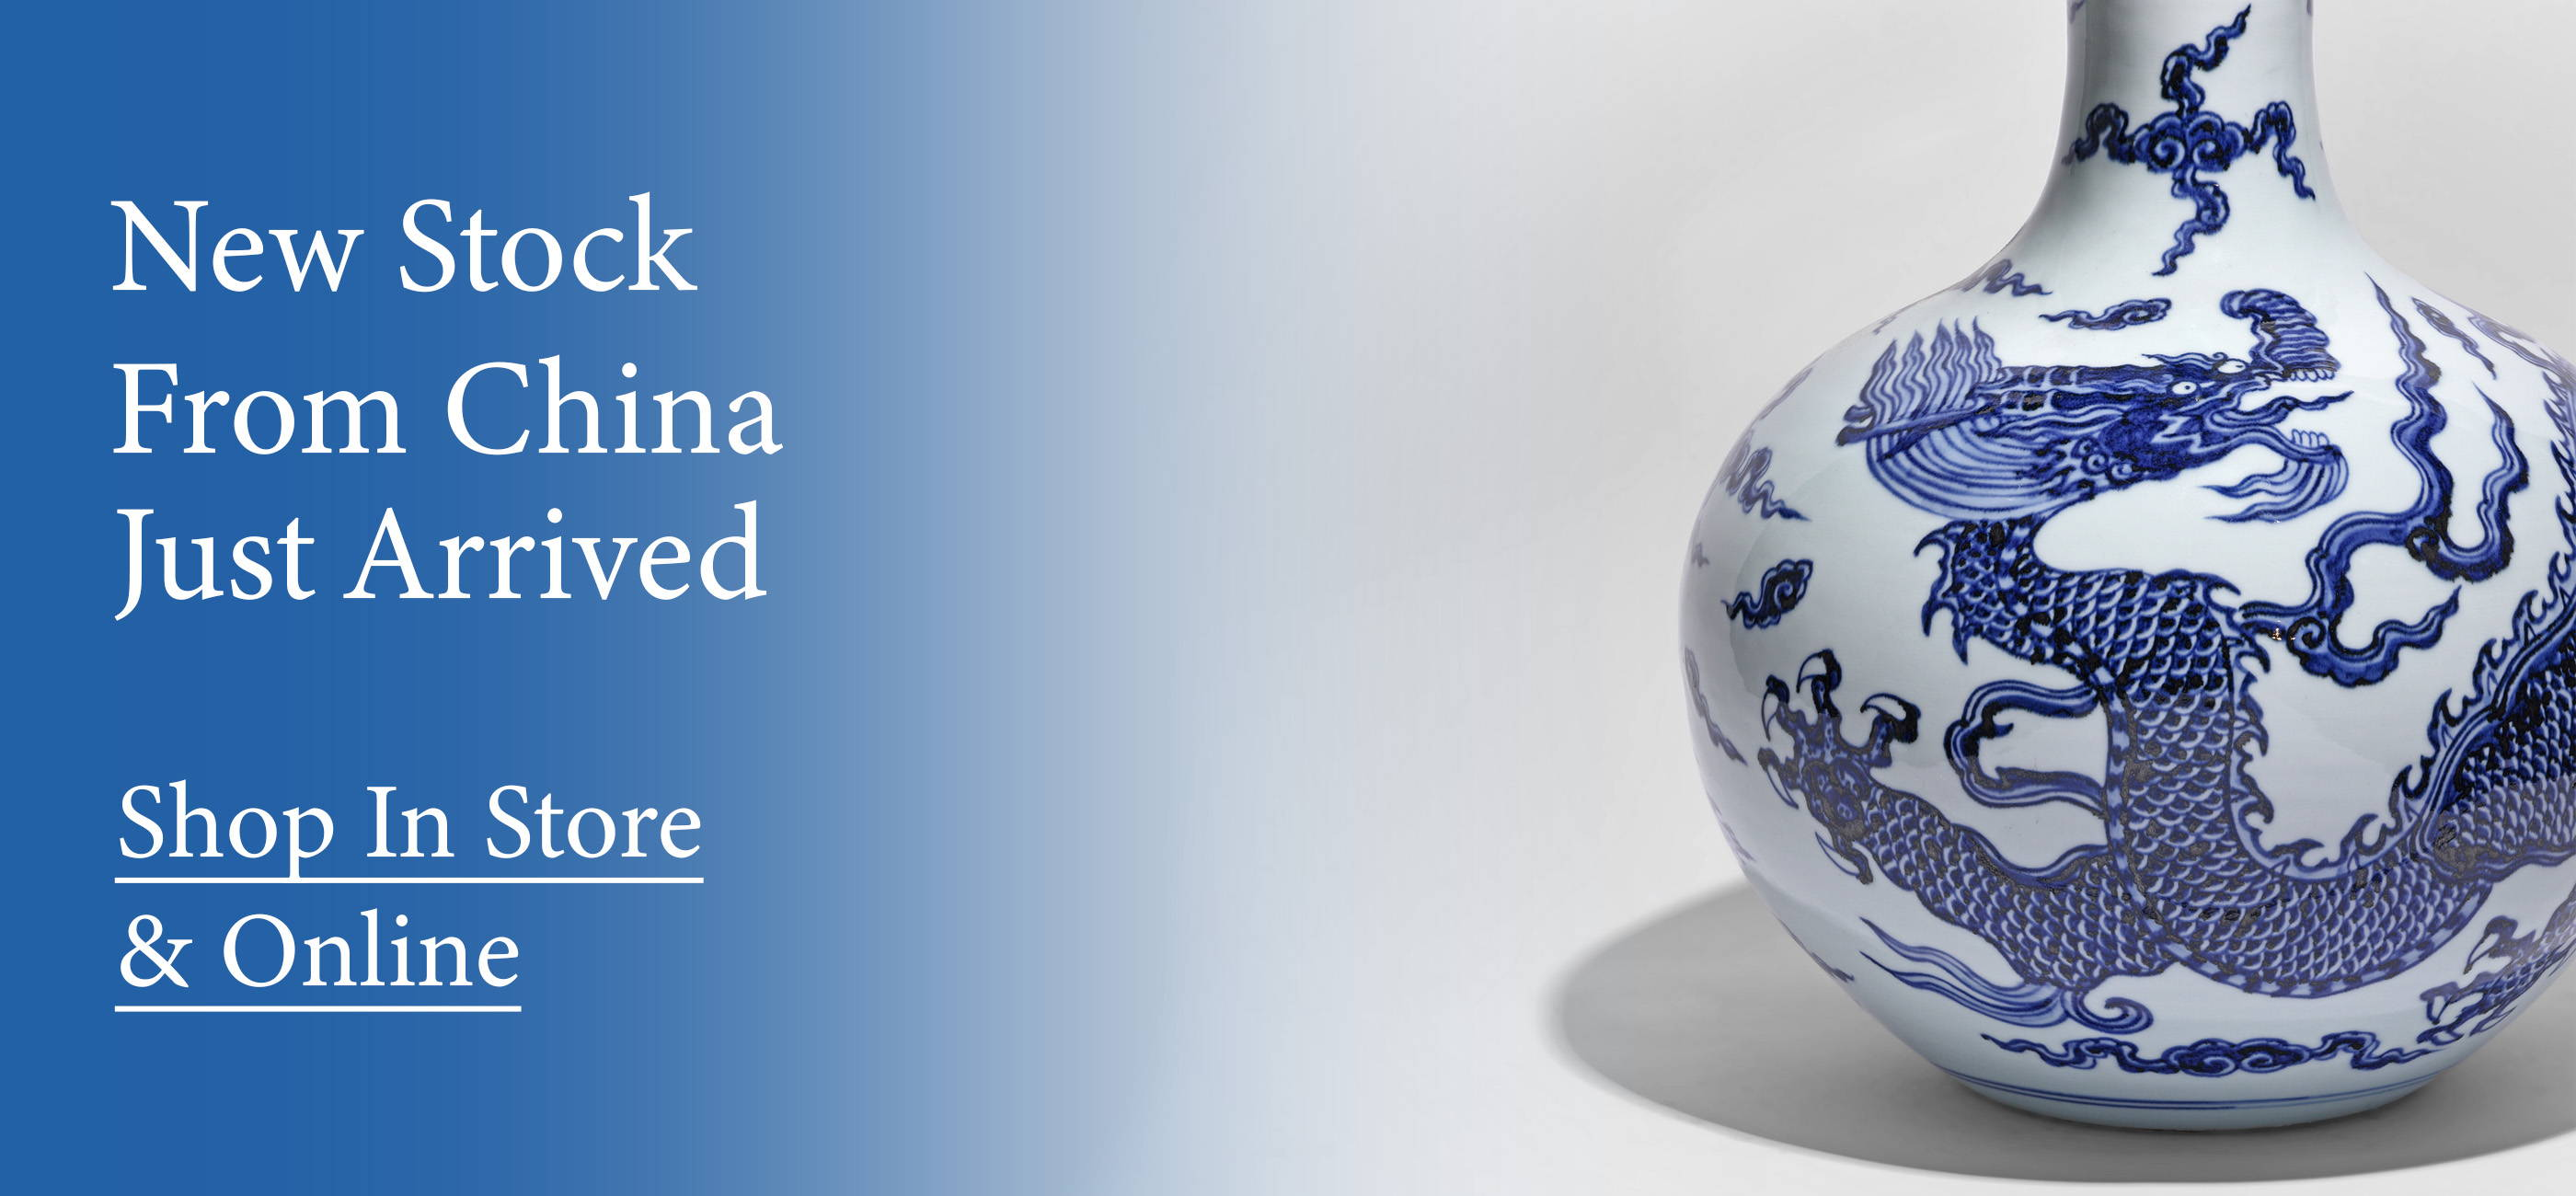 Shop our latest arrivals of Chinese antique furniture and these blue & white Chinese vases